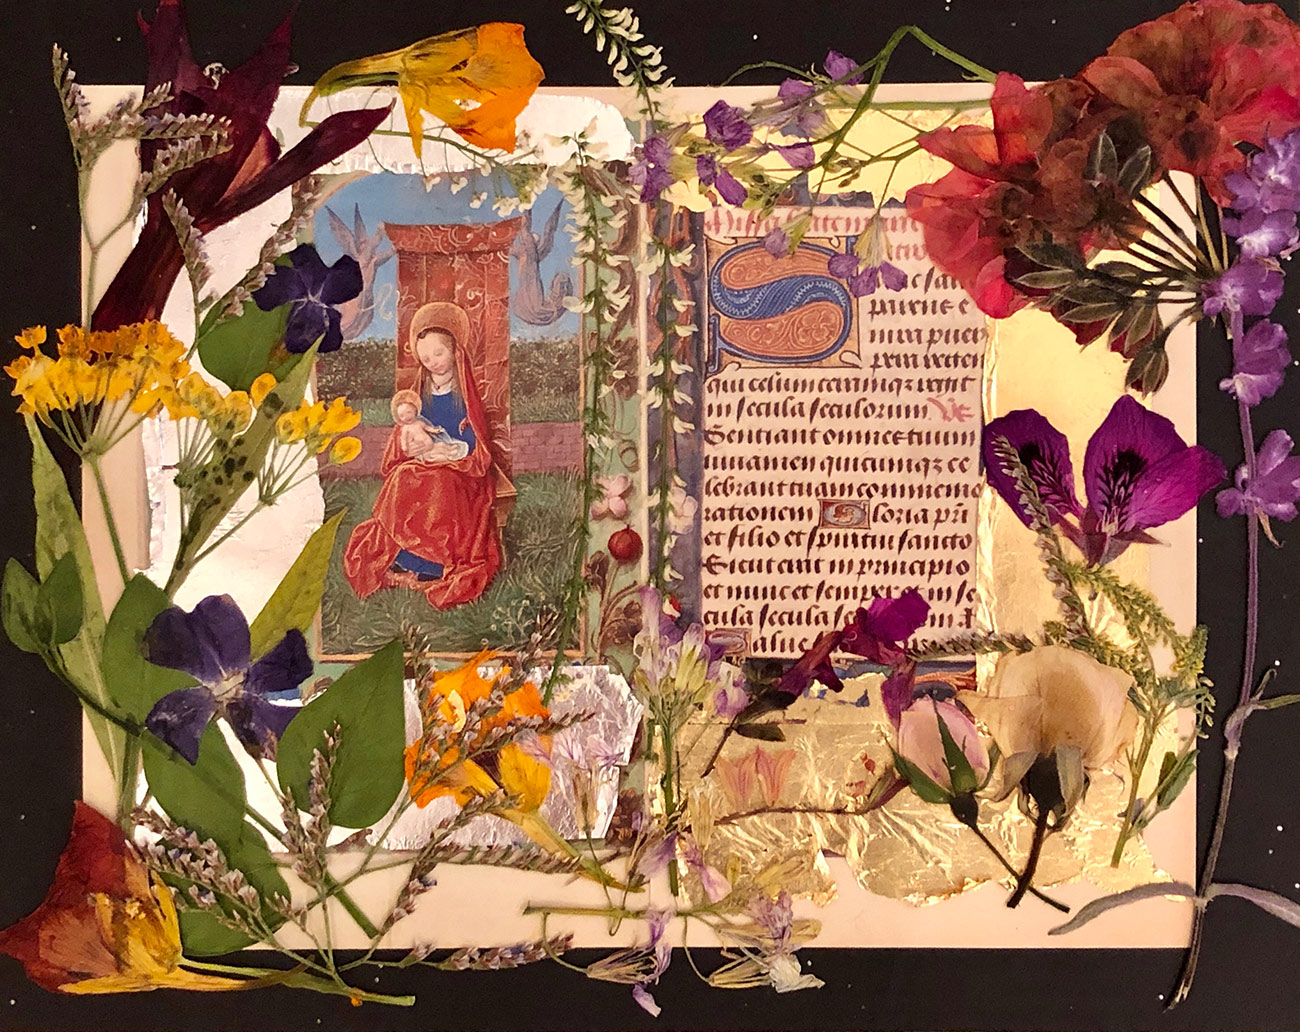 Mixed media collage with Virgin Mary holding Jesus on the left, manuscript text on the right. There is silver foil on the left side, gold foil on the right, and flowers along all the borders